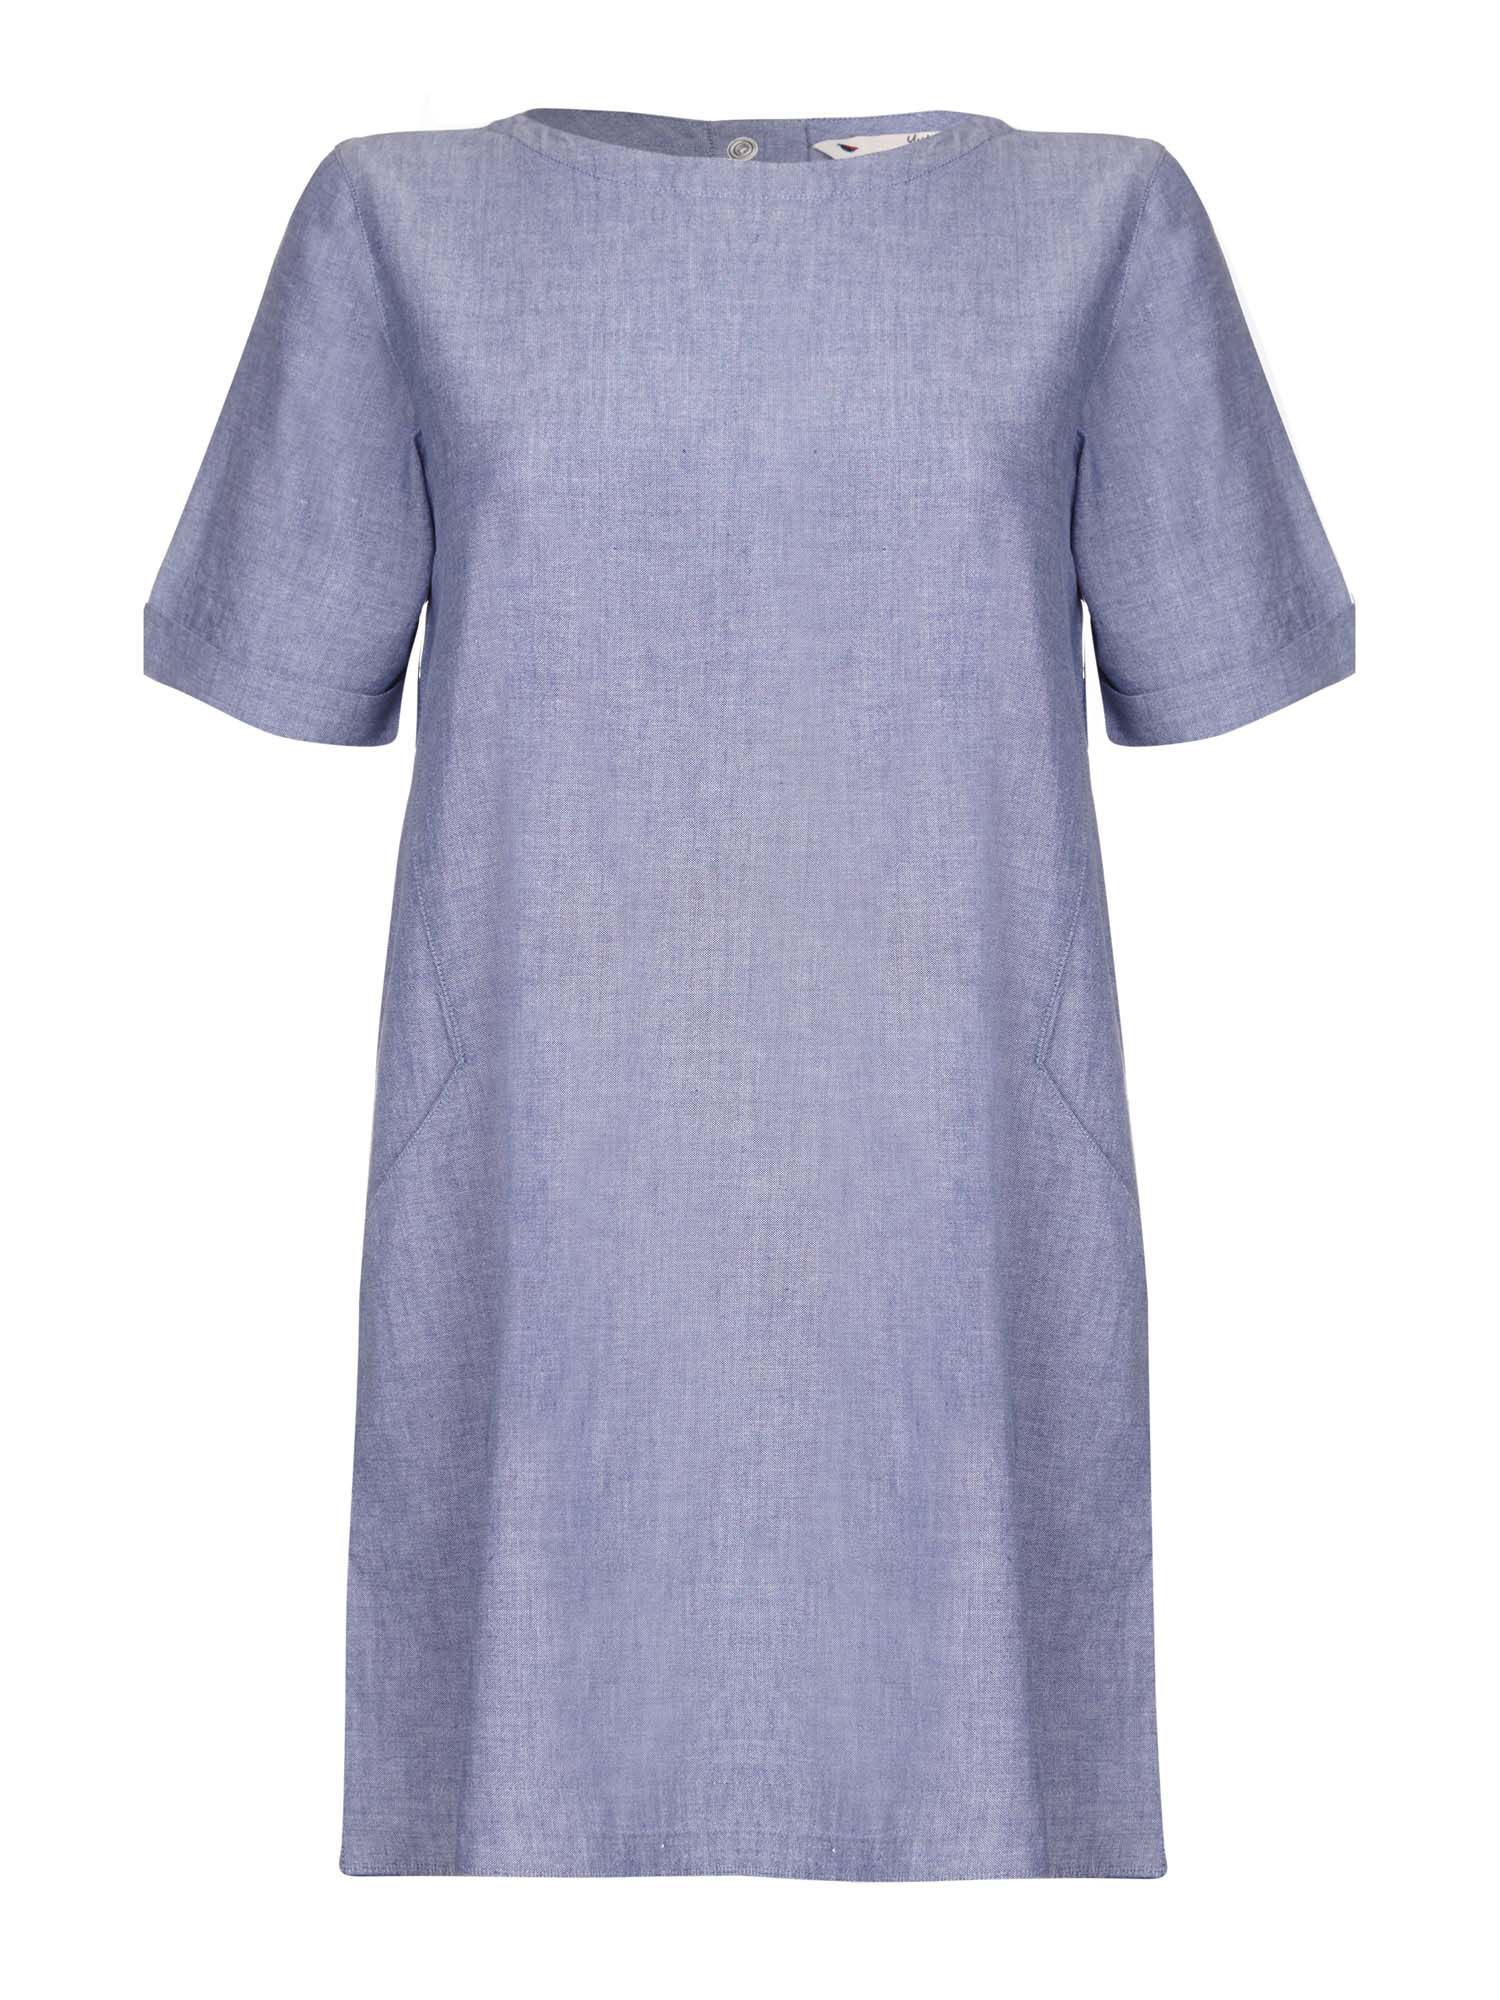 Yumi Chambray Short Sleeve Tunic Dress Blue